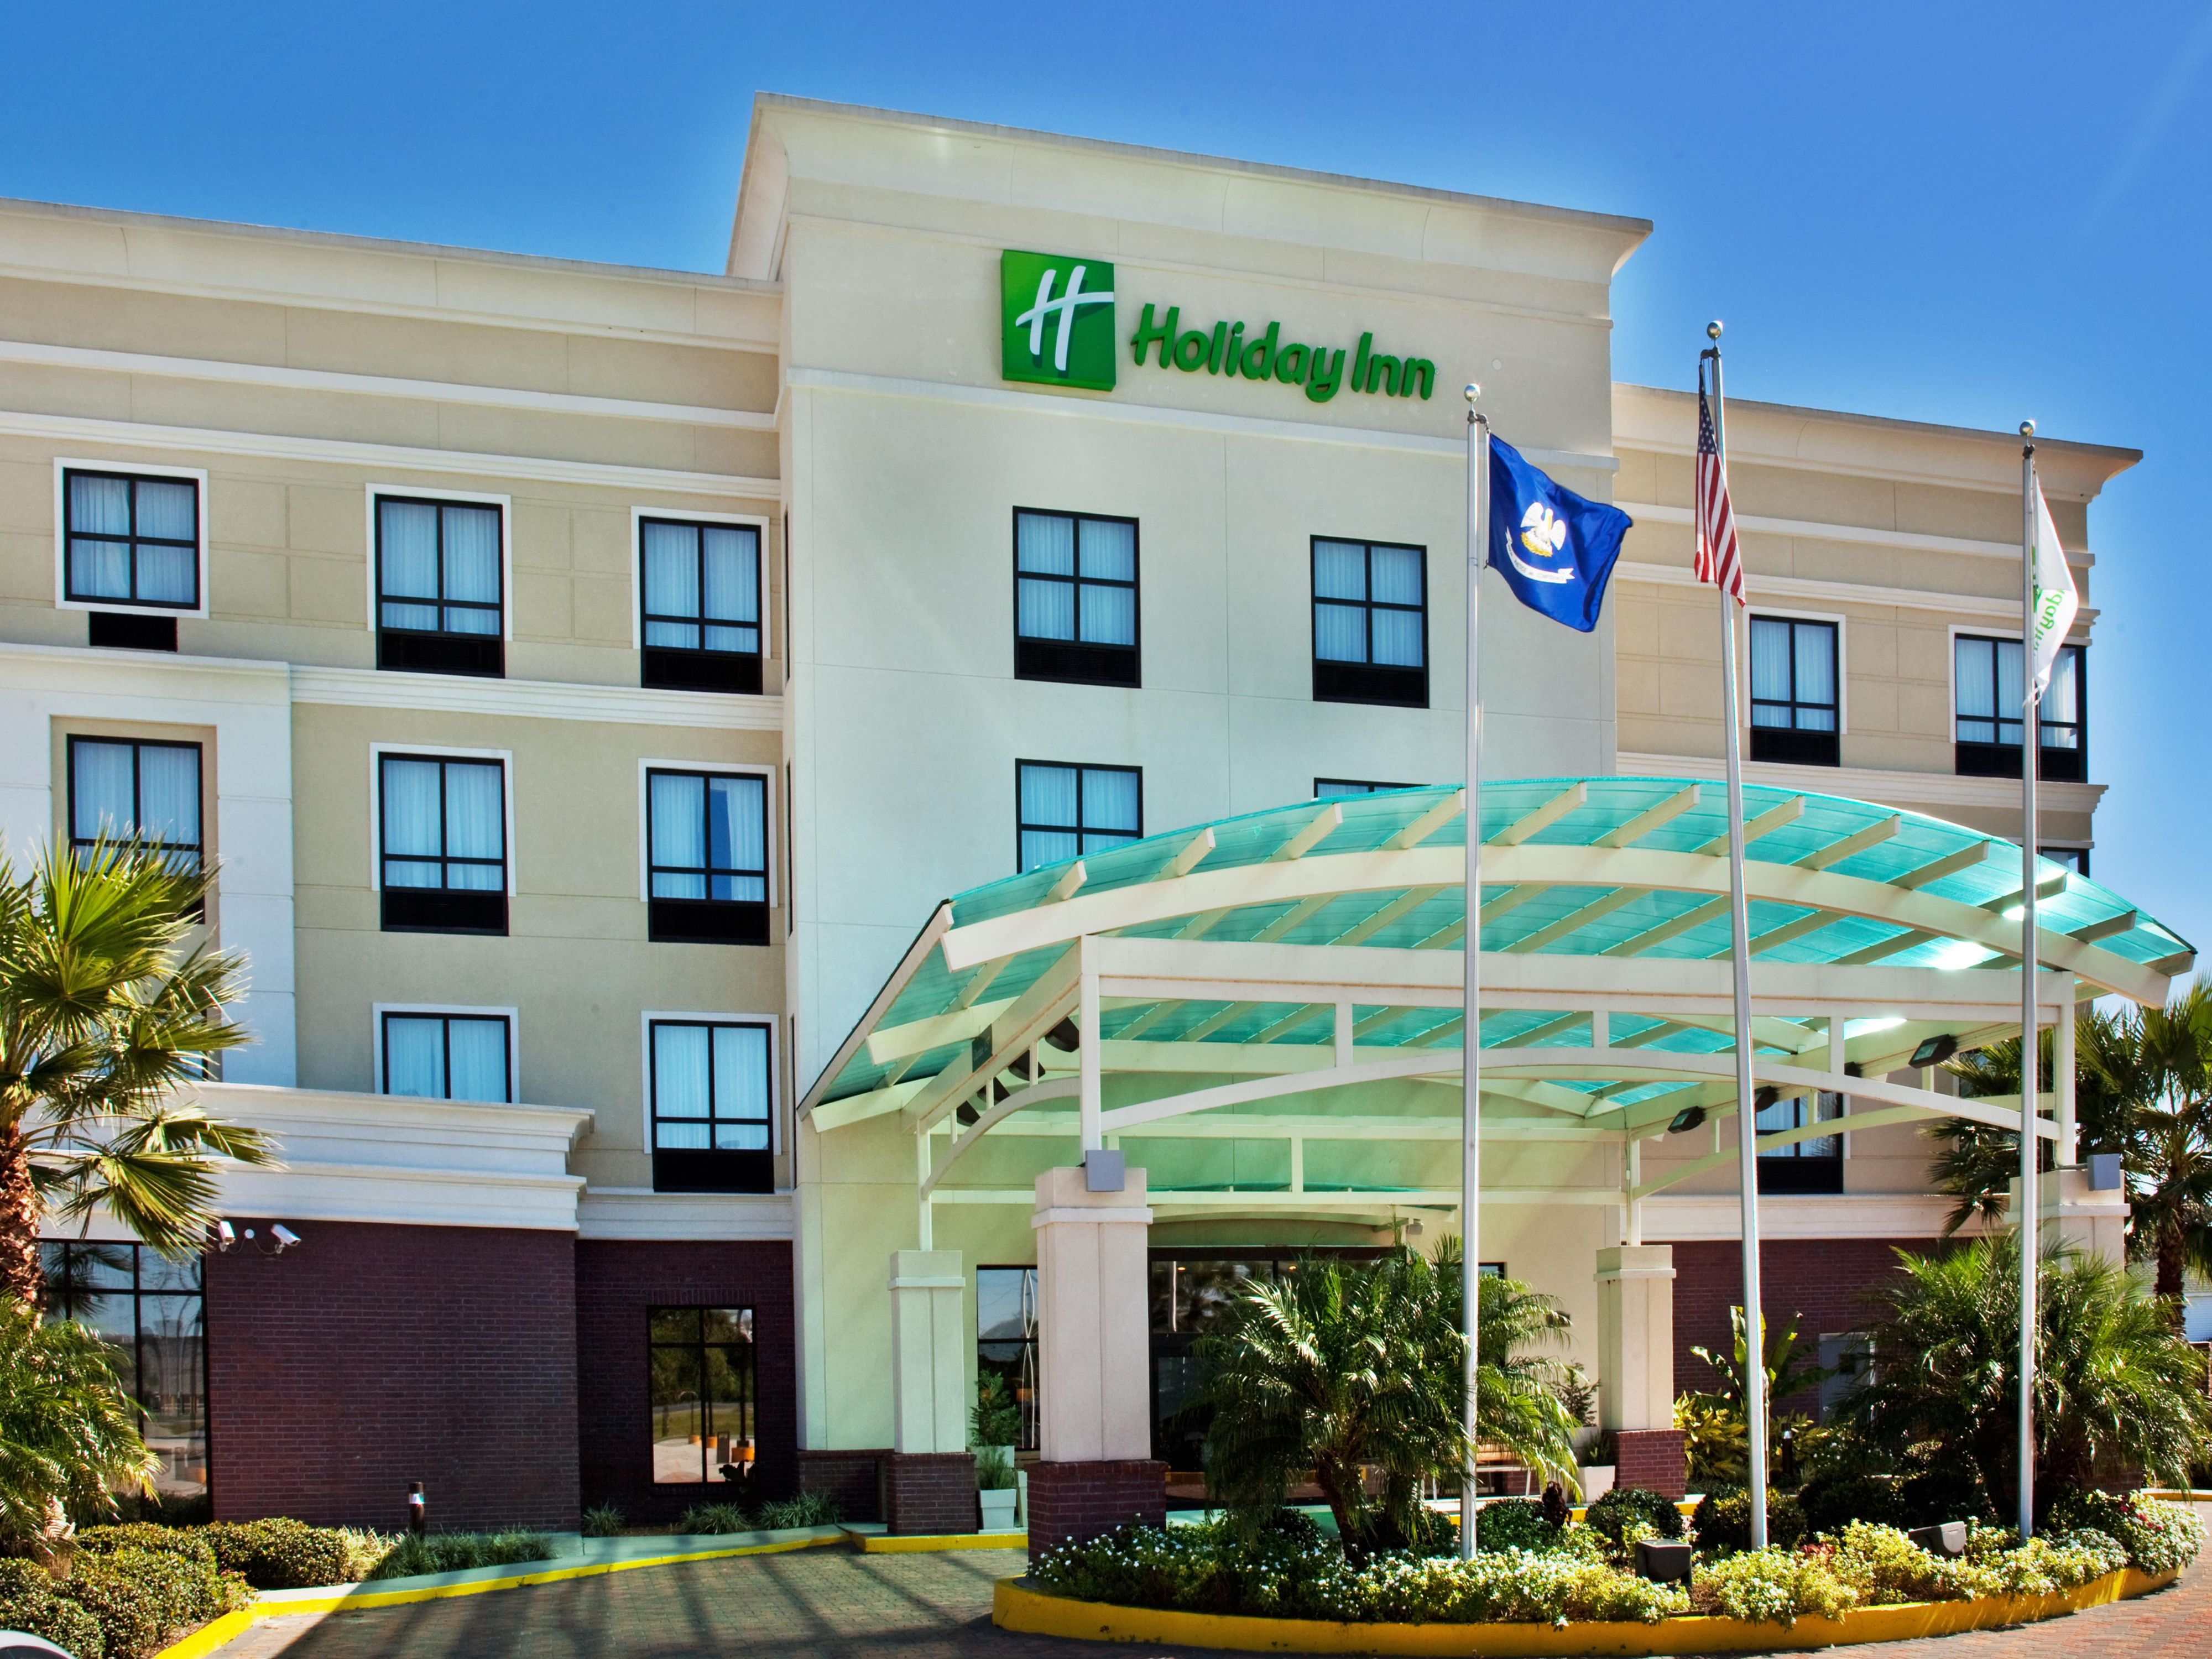 Corporate guests In Houma have easy access to parkng at the Hotel